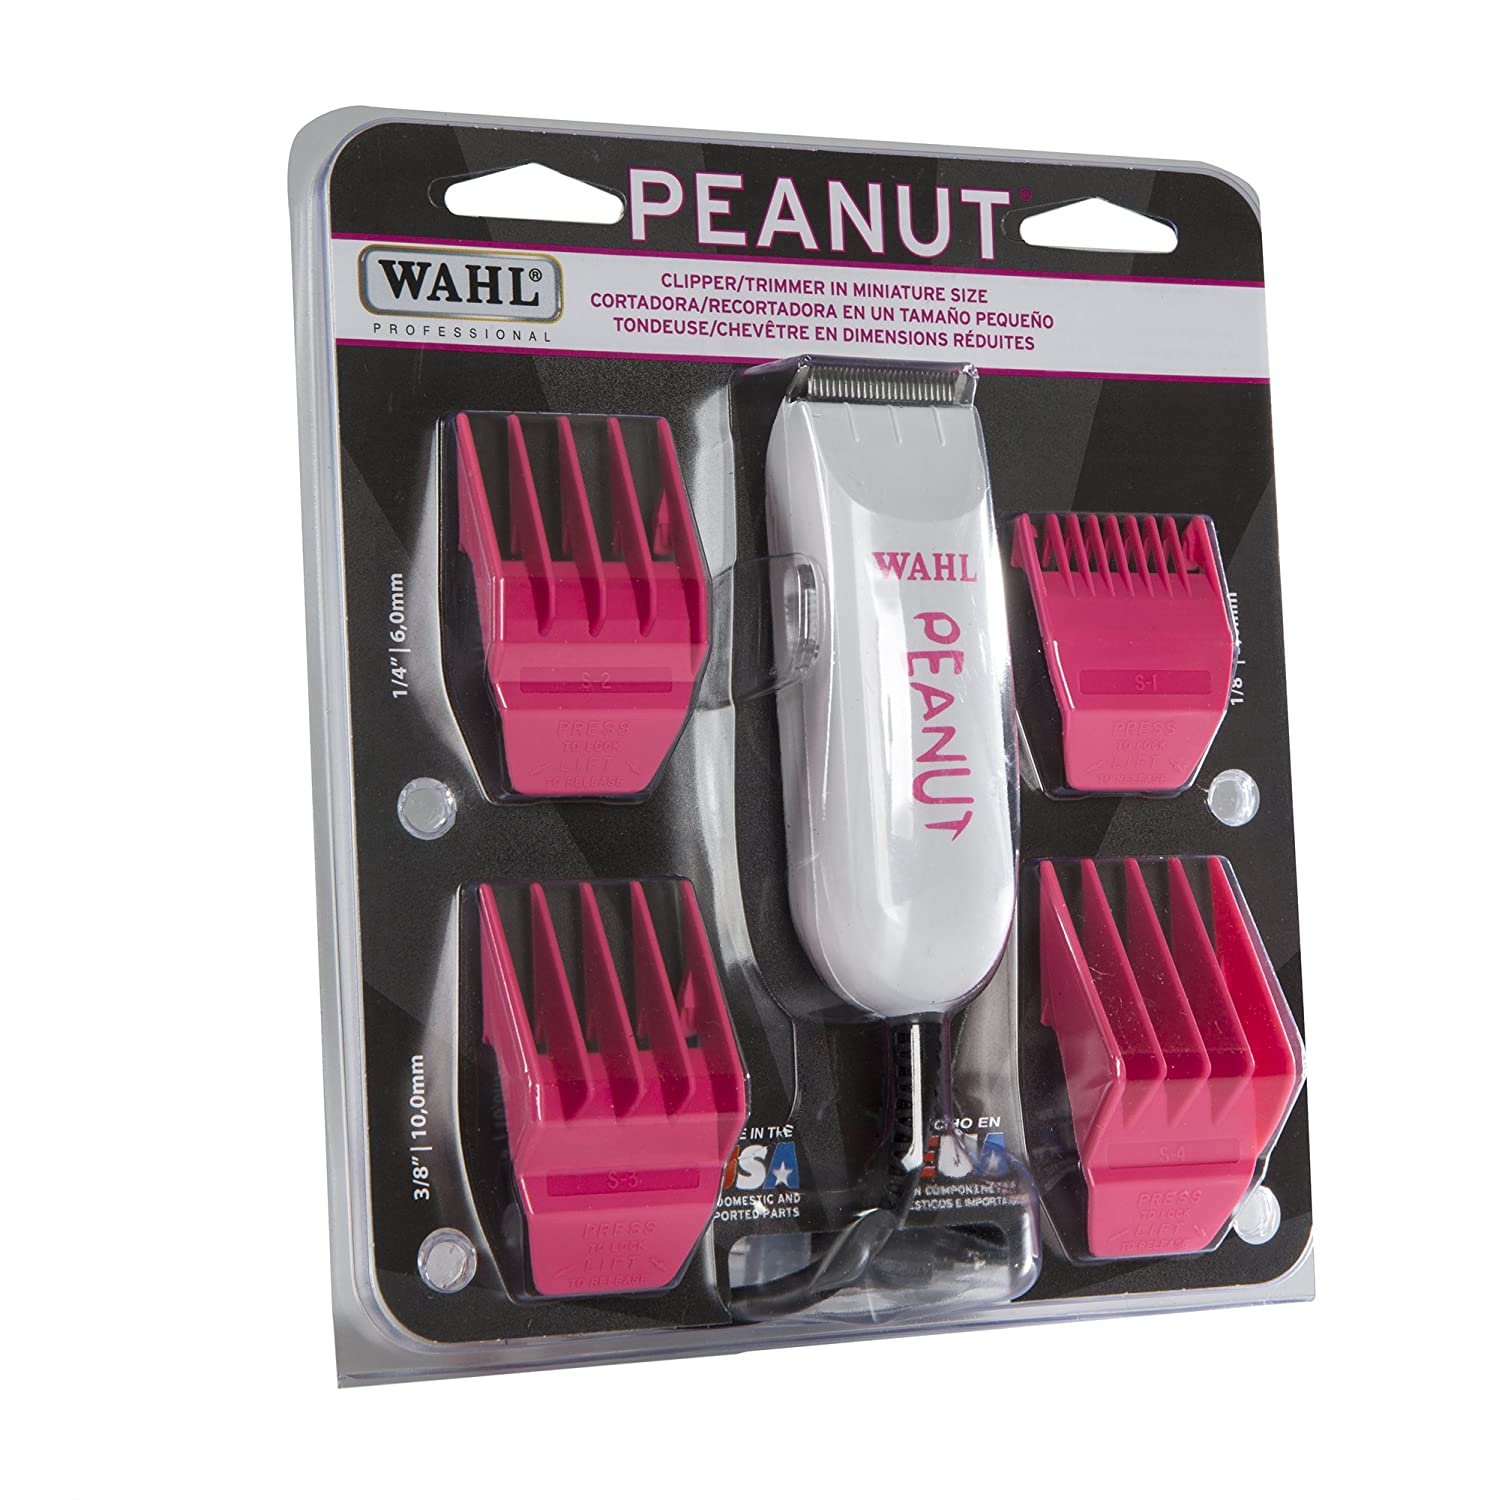 Wahl Professional Peanut Classic Clipper Trimmer 8685-1701, Pink Great for Barbers and Stylists Powerful Rotary Motor